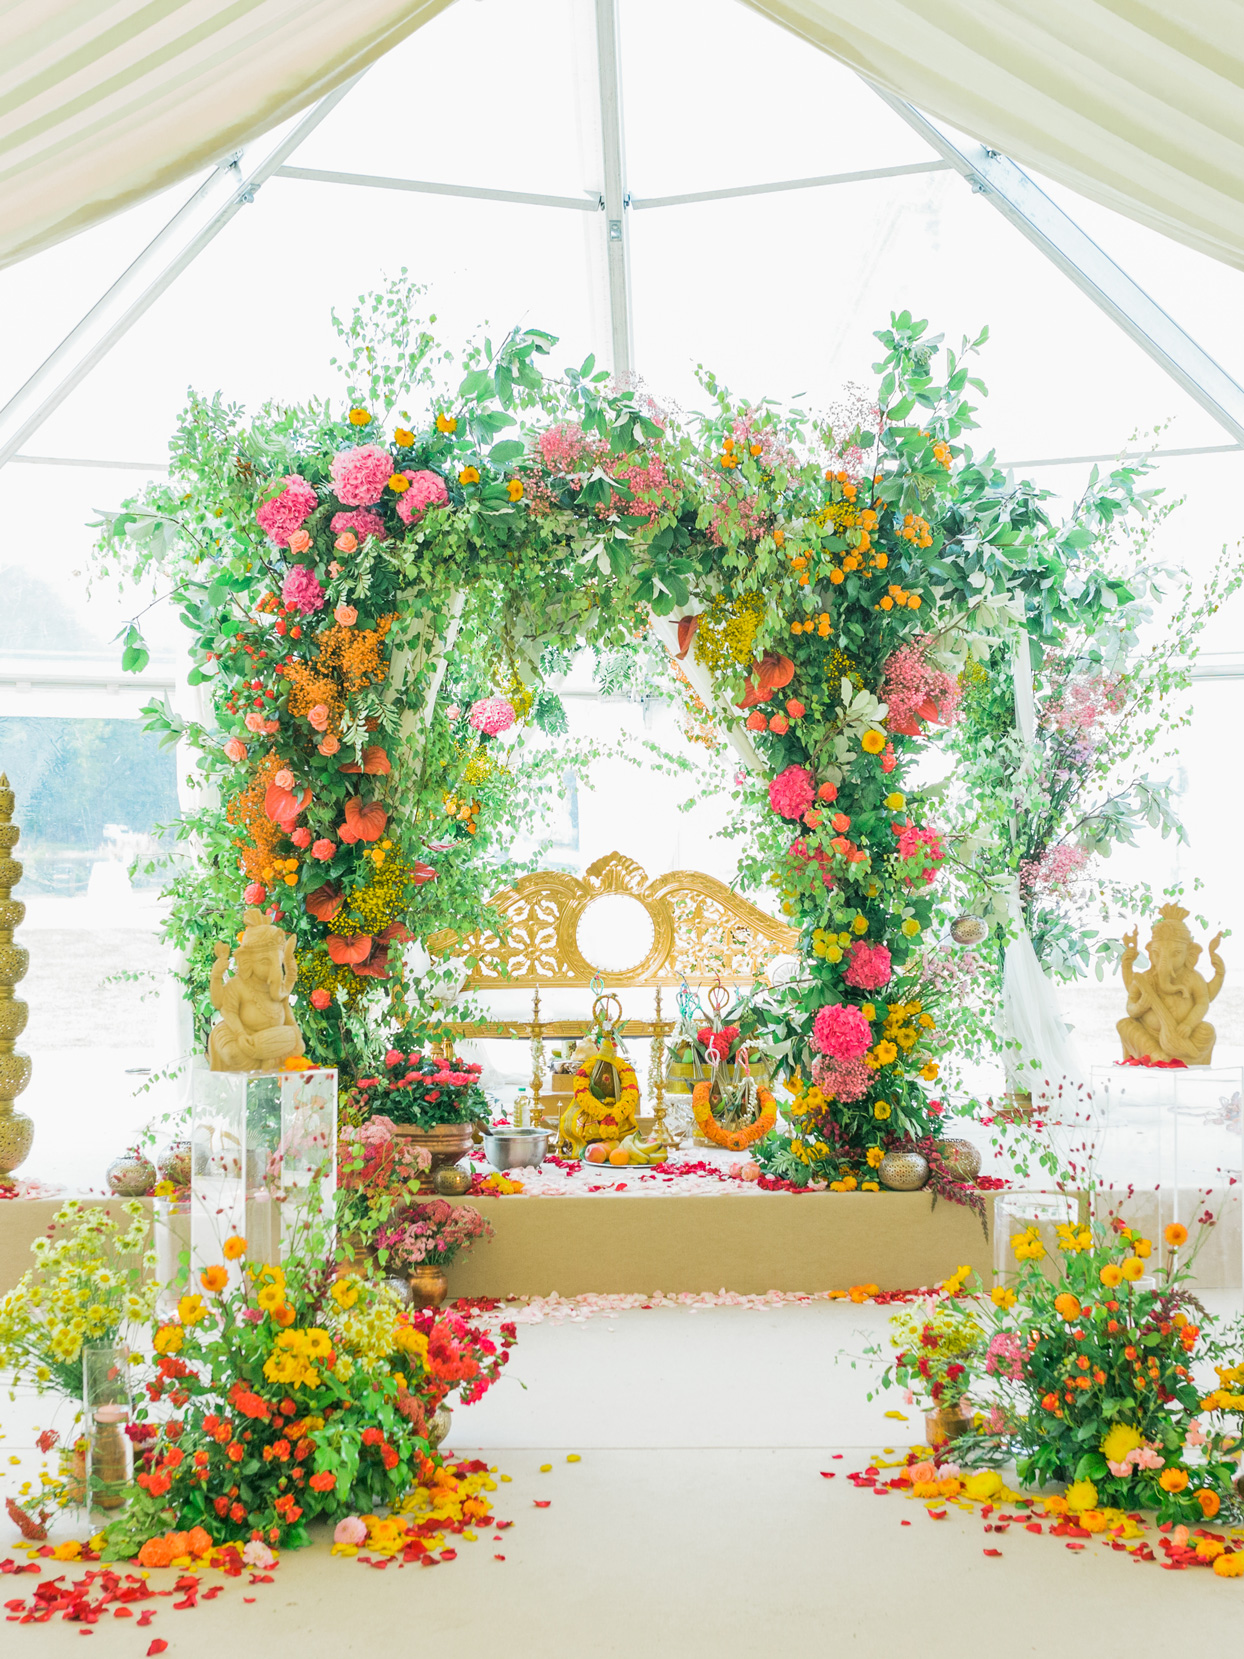 Ganesh statues and floral display wedding ceremony